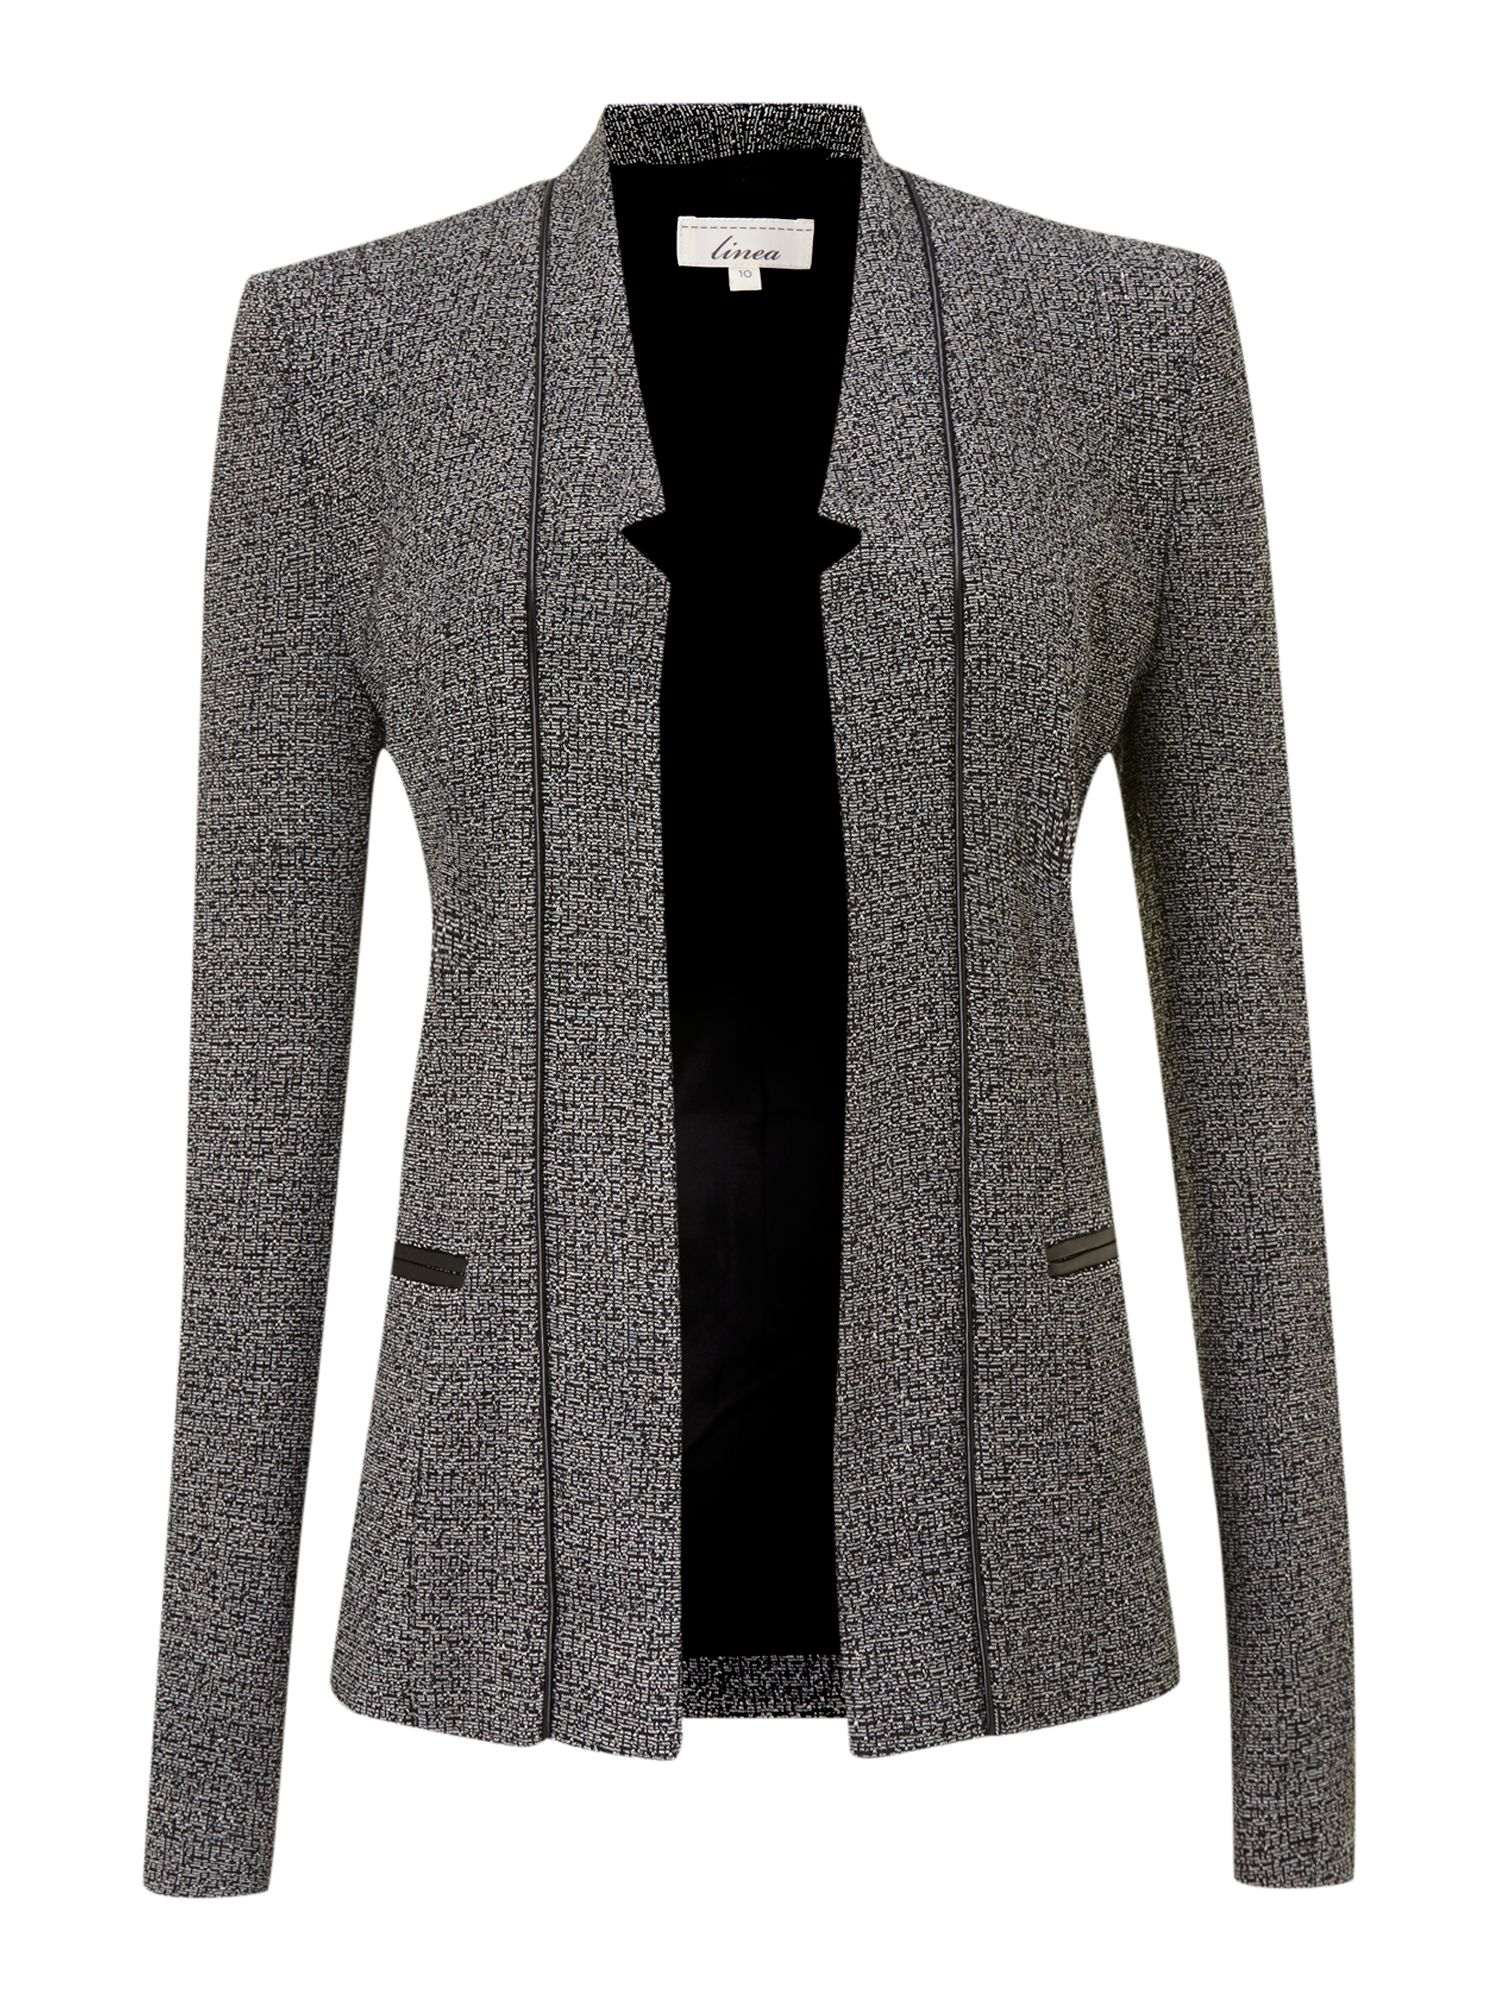 Tweedy ponte jacket